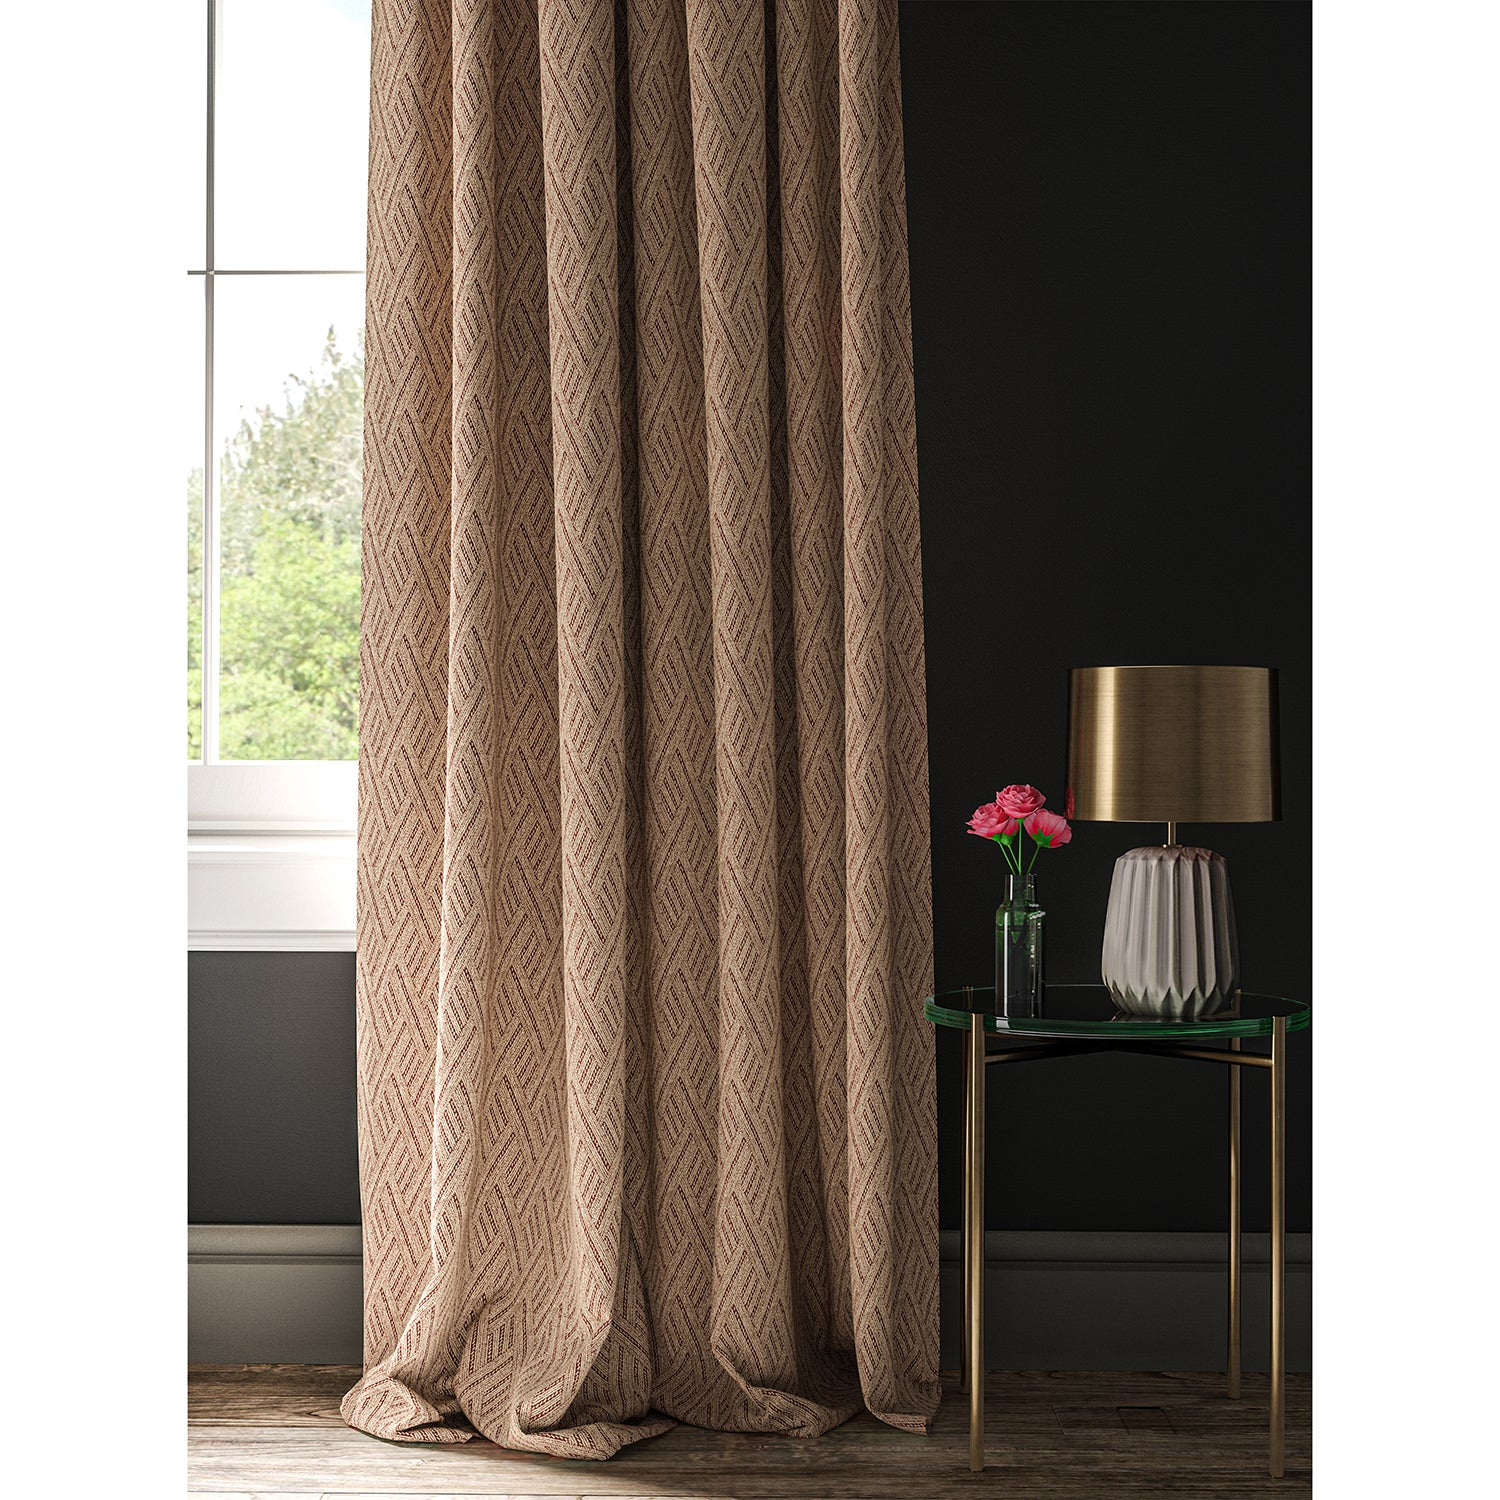 Curtain in a red and neutral geometric weave fabric